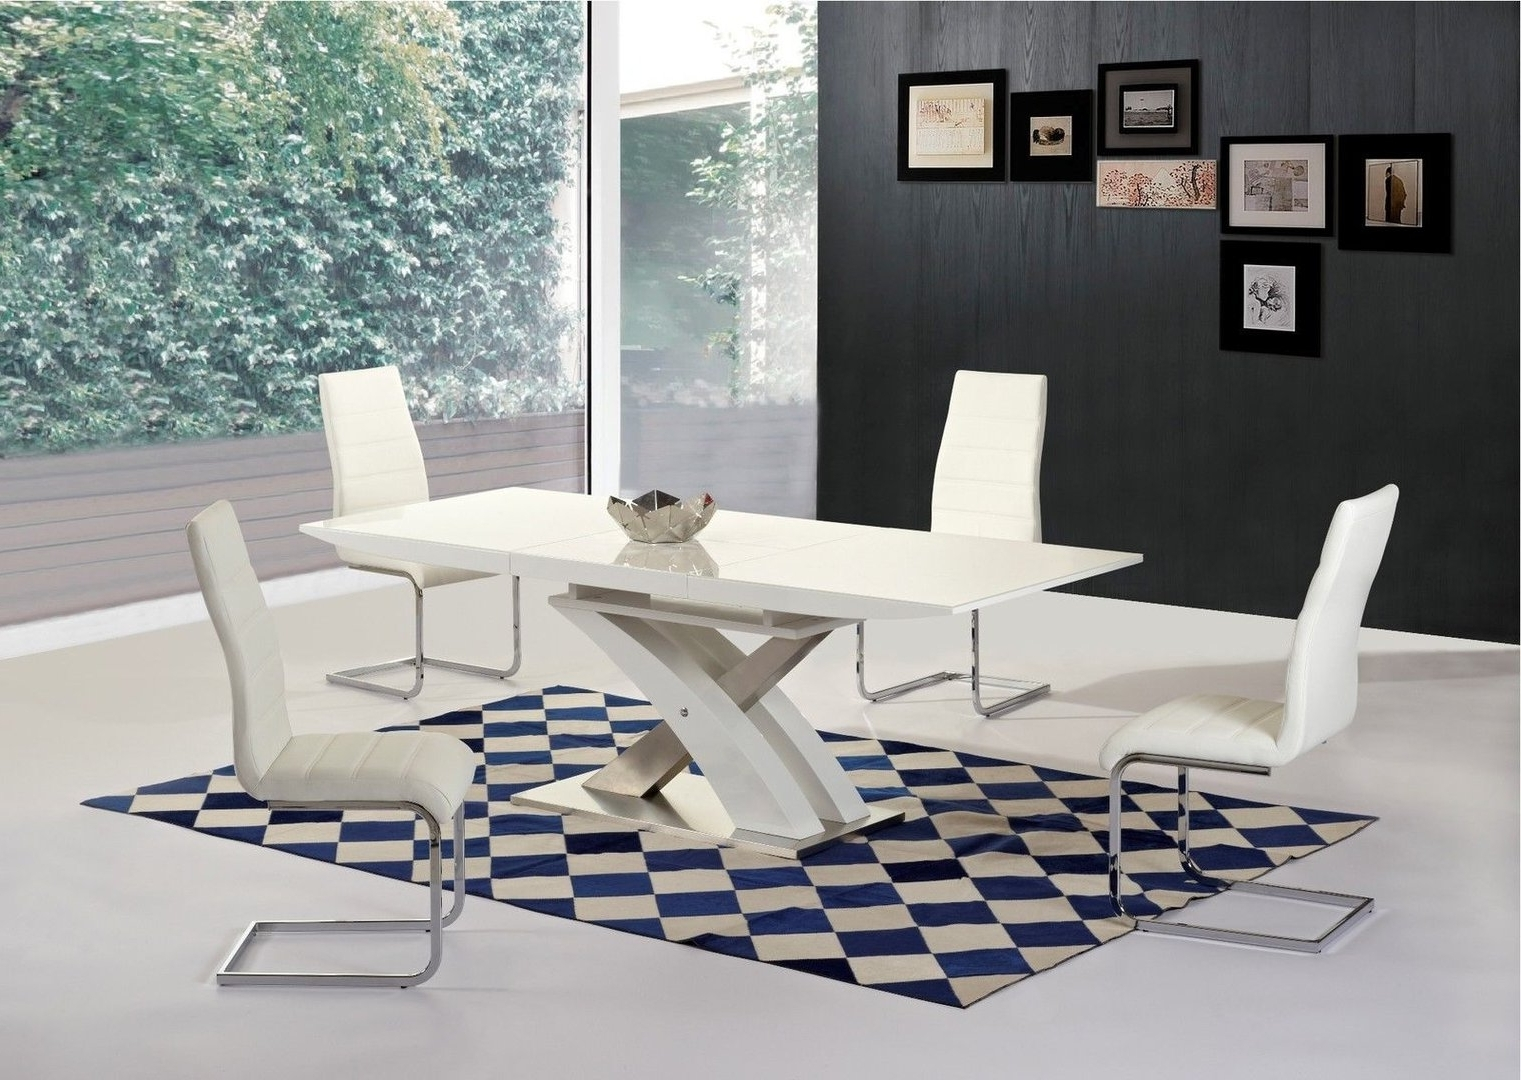 Extending Dining Tables 6 Chairs Regarding Widely Used White High Gloss / Glass Extending Dining Table & 6 Chairs (View 4 of 25)